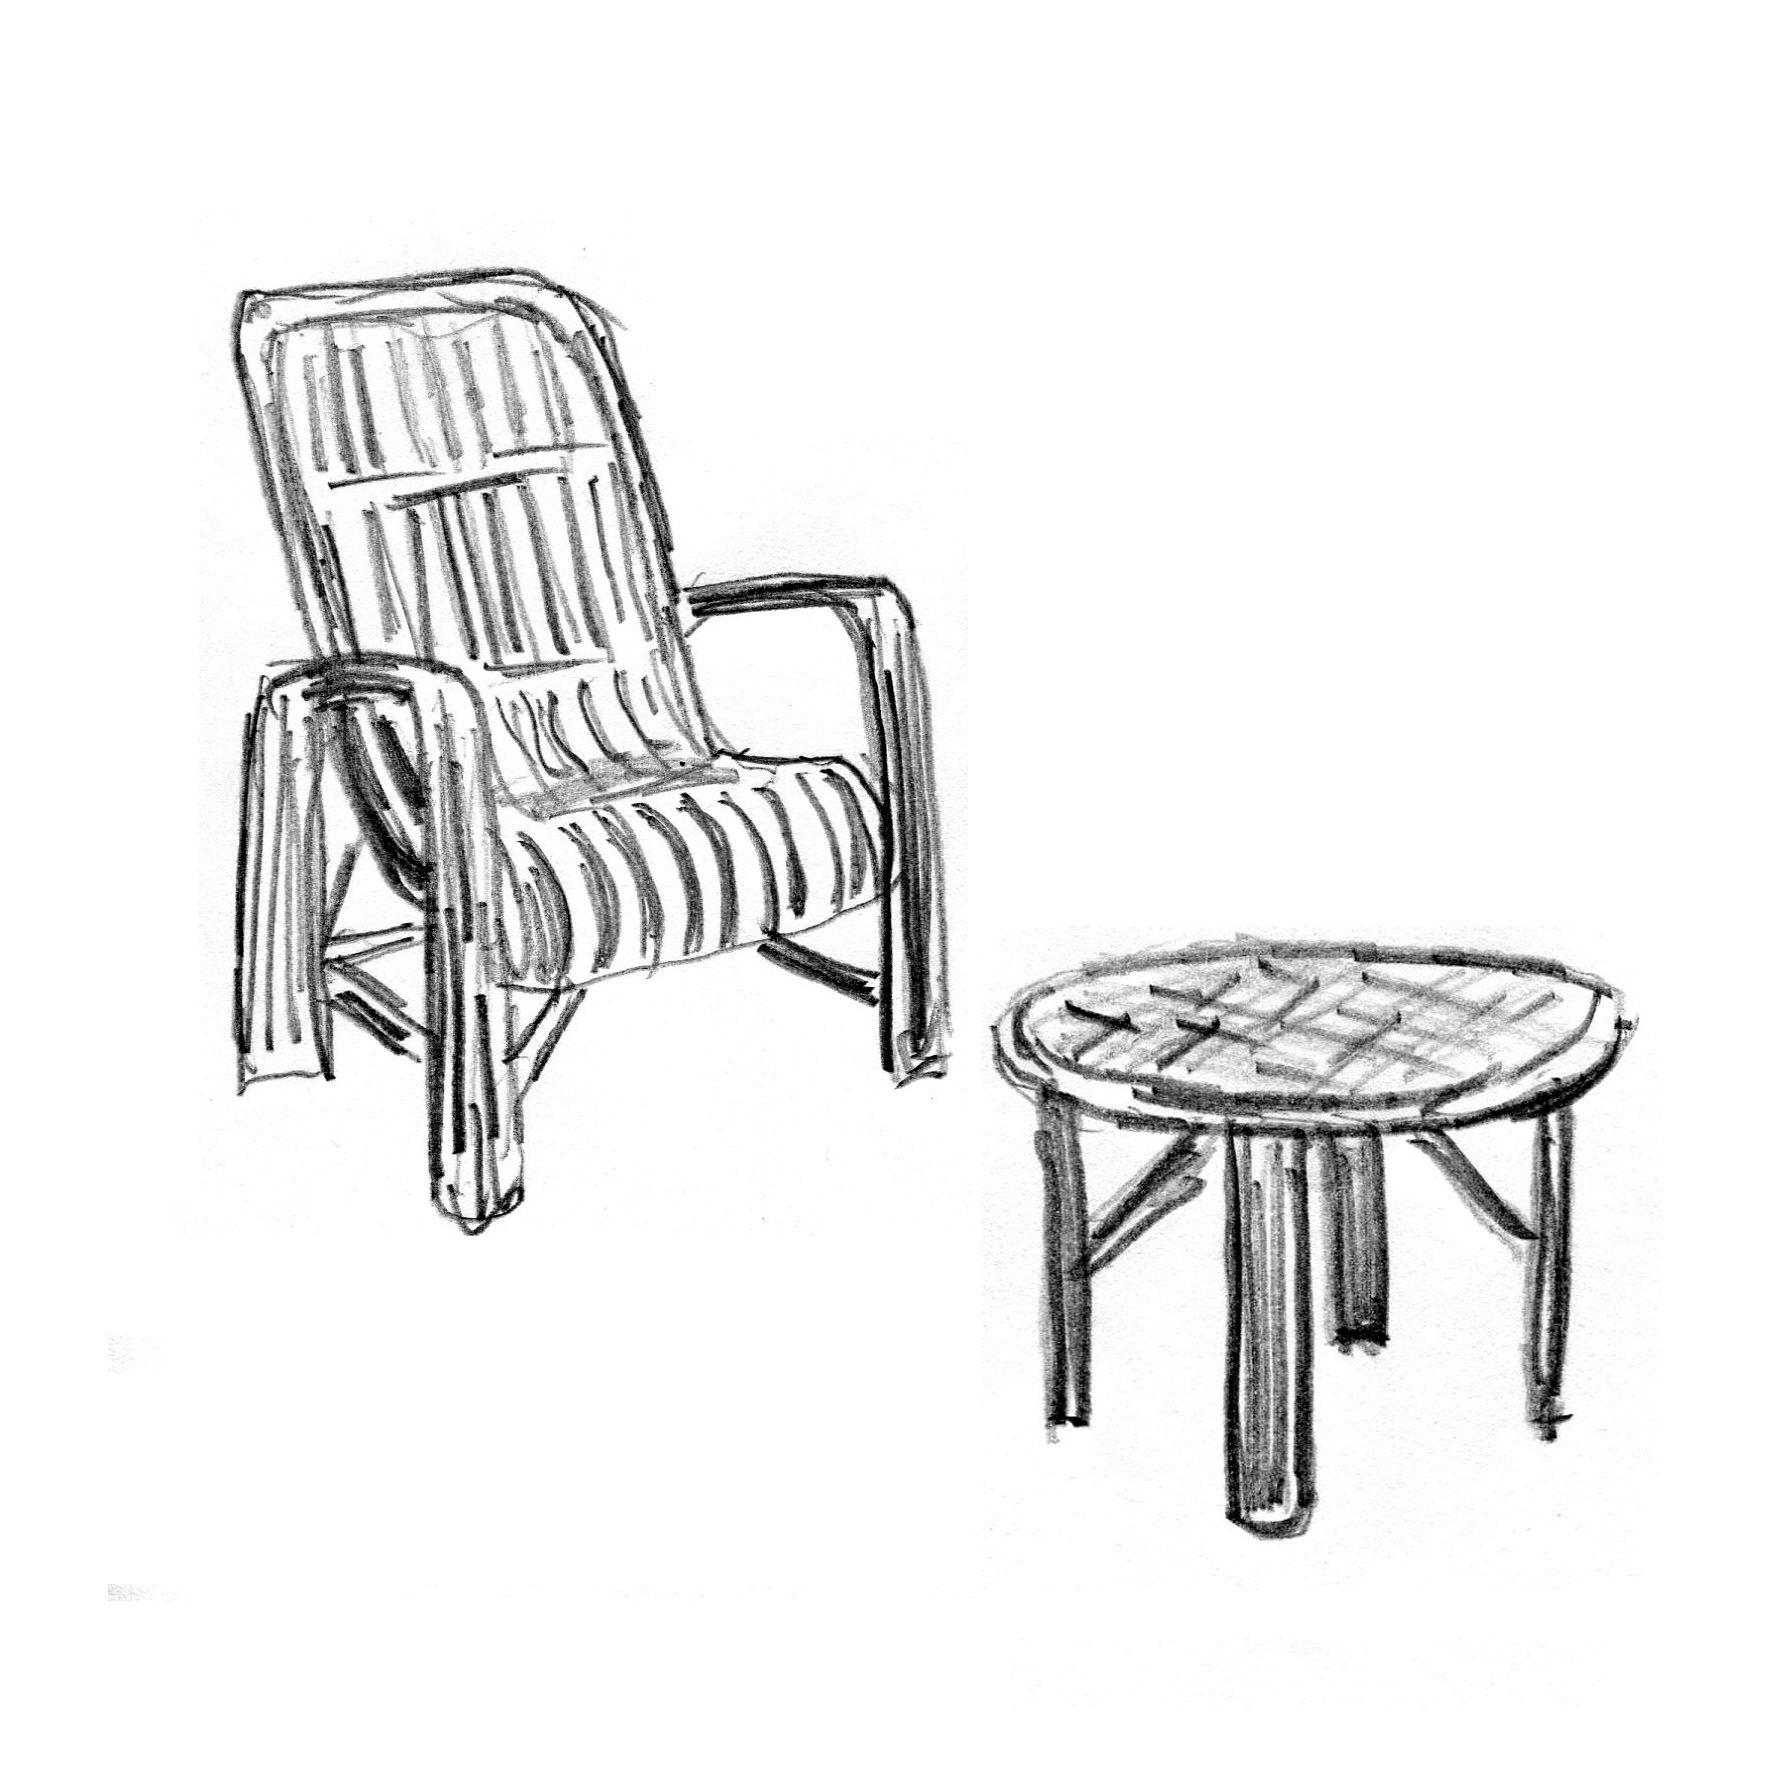 FichierLouis Sognot 415 Table Chaise Rotin 1950